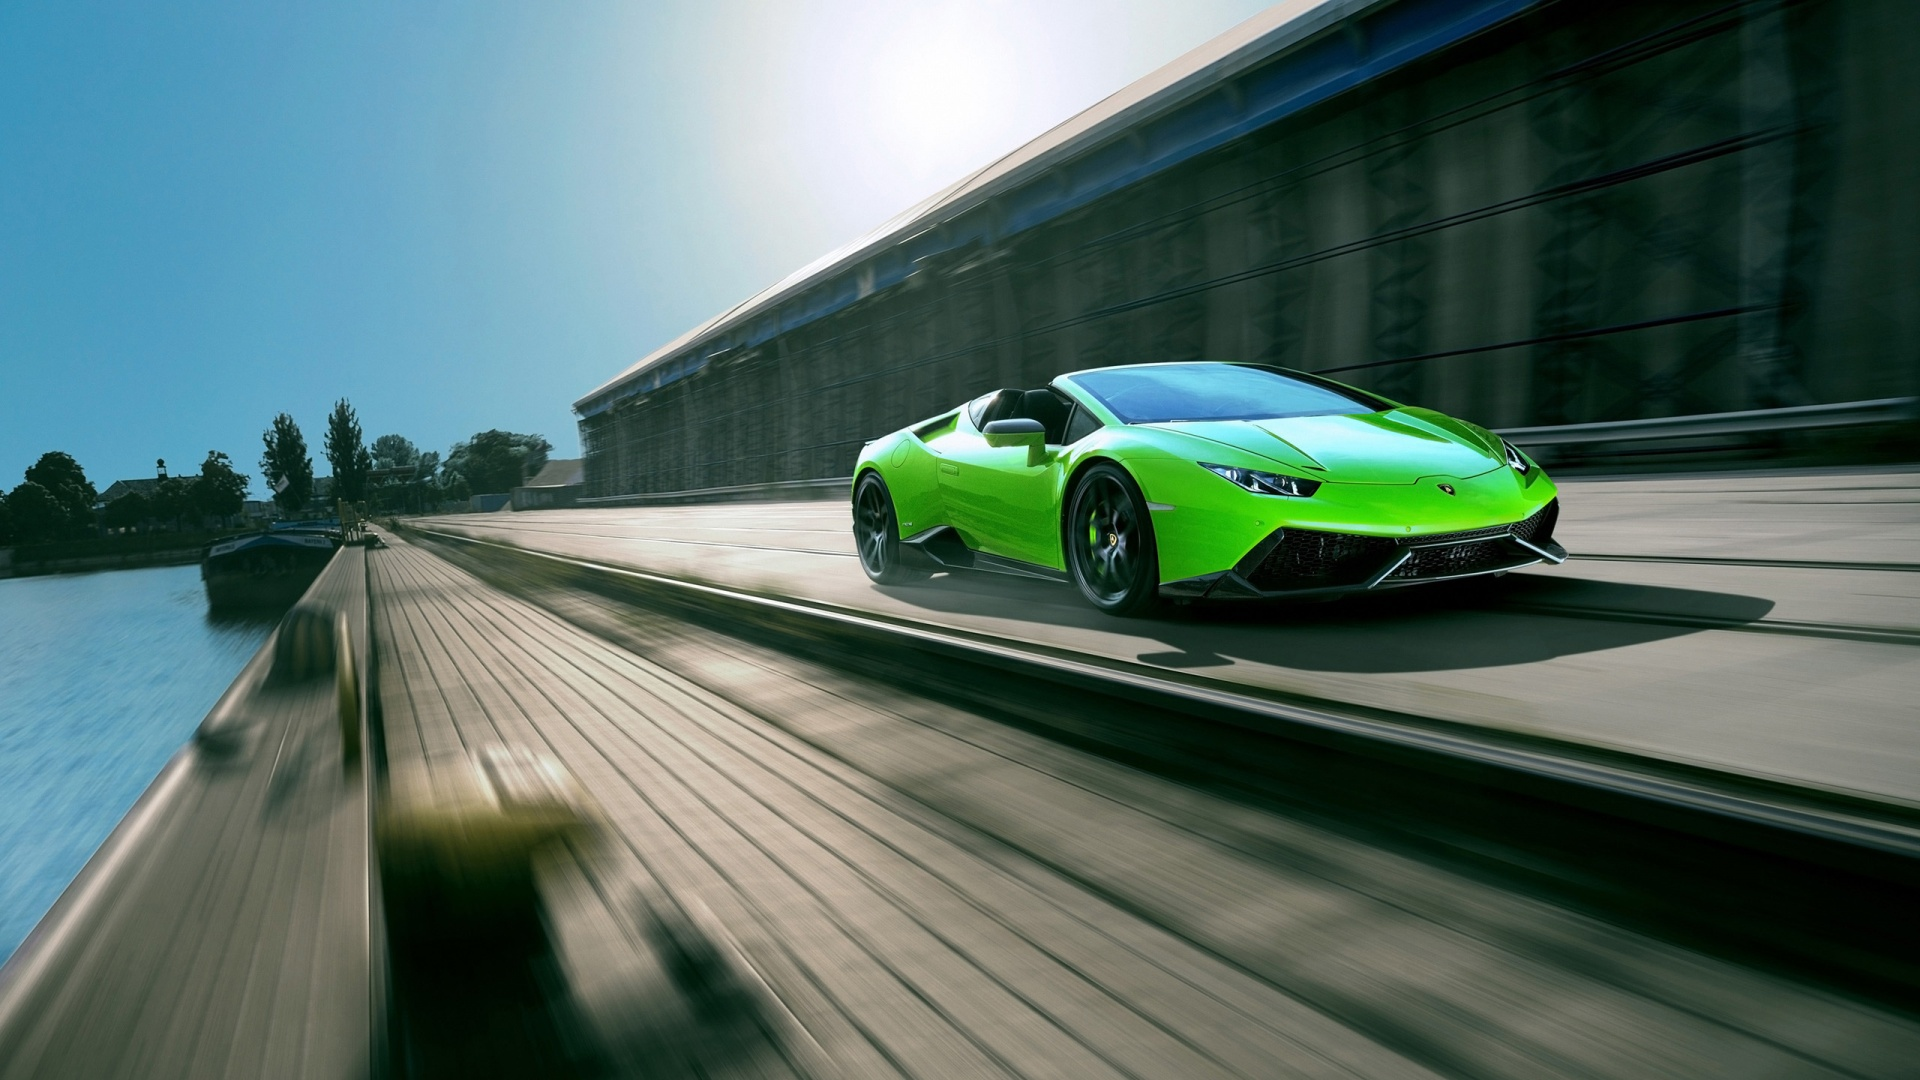 Pictures-of-Lamborghini-Huracan